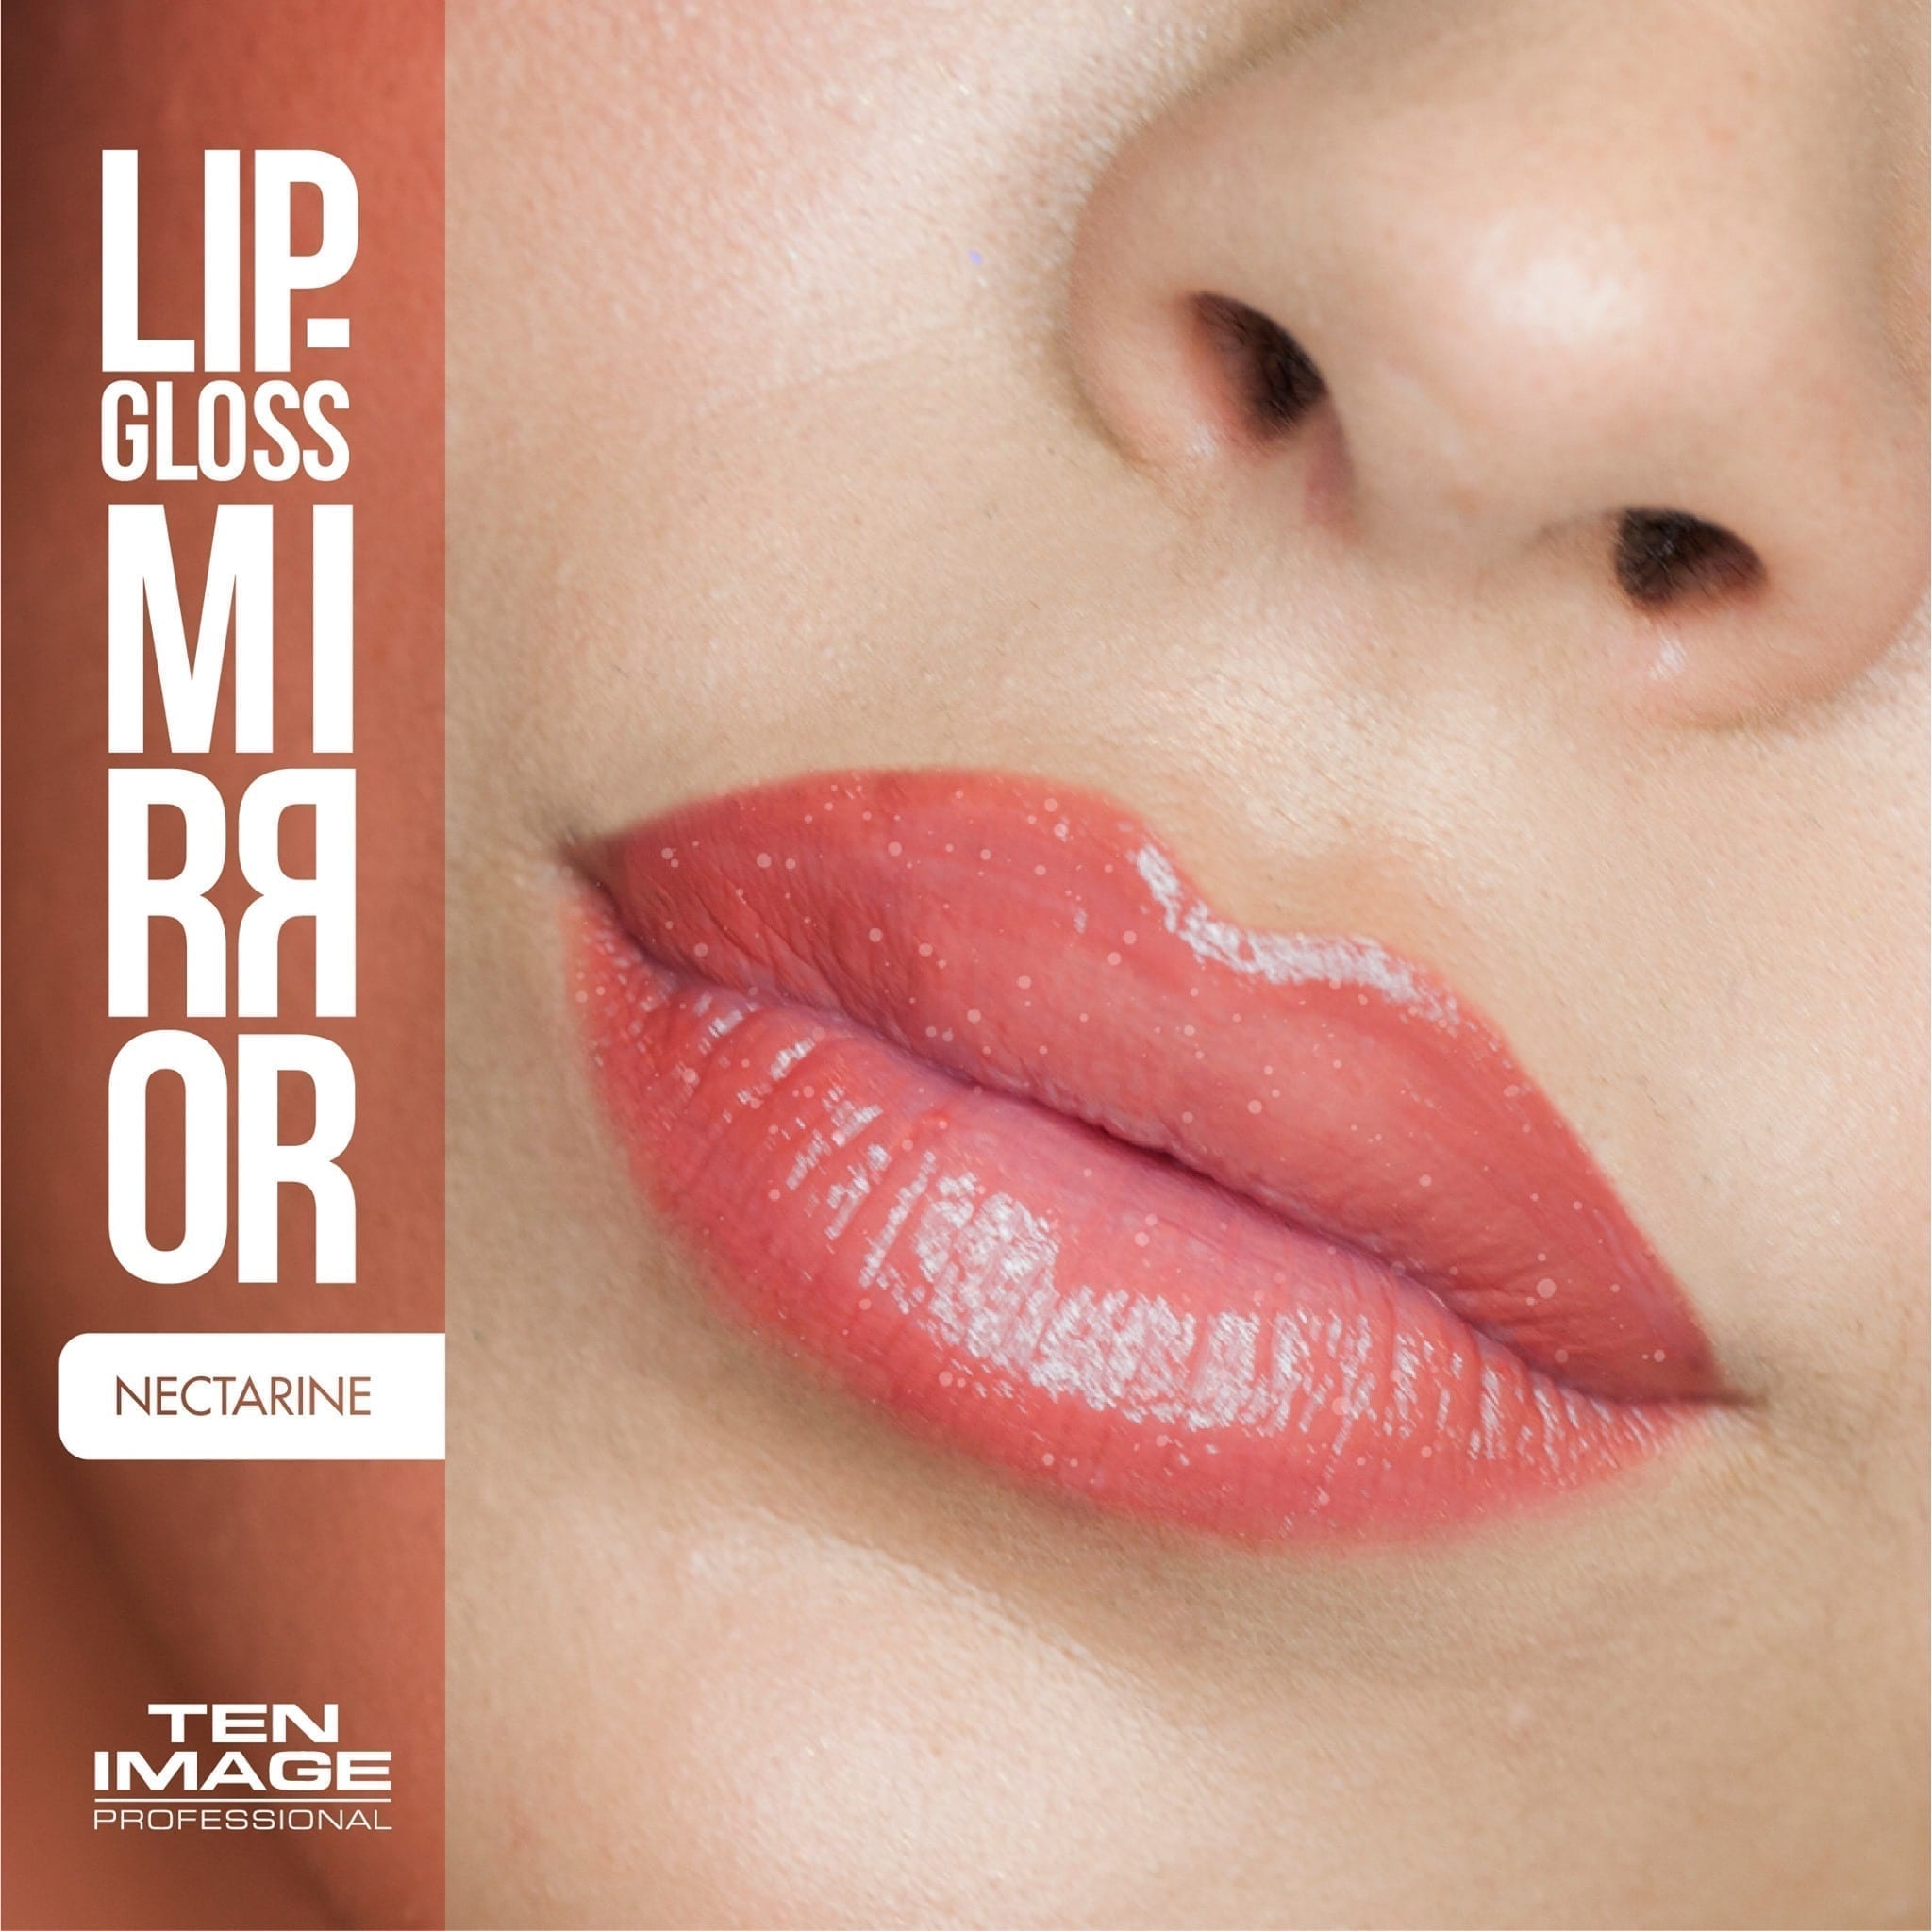 ML-07 Nectarine - Mirror Lip Gloss - Ten Image Professional